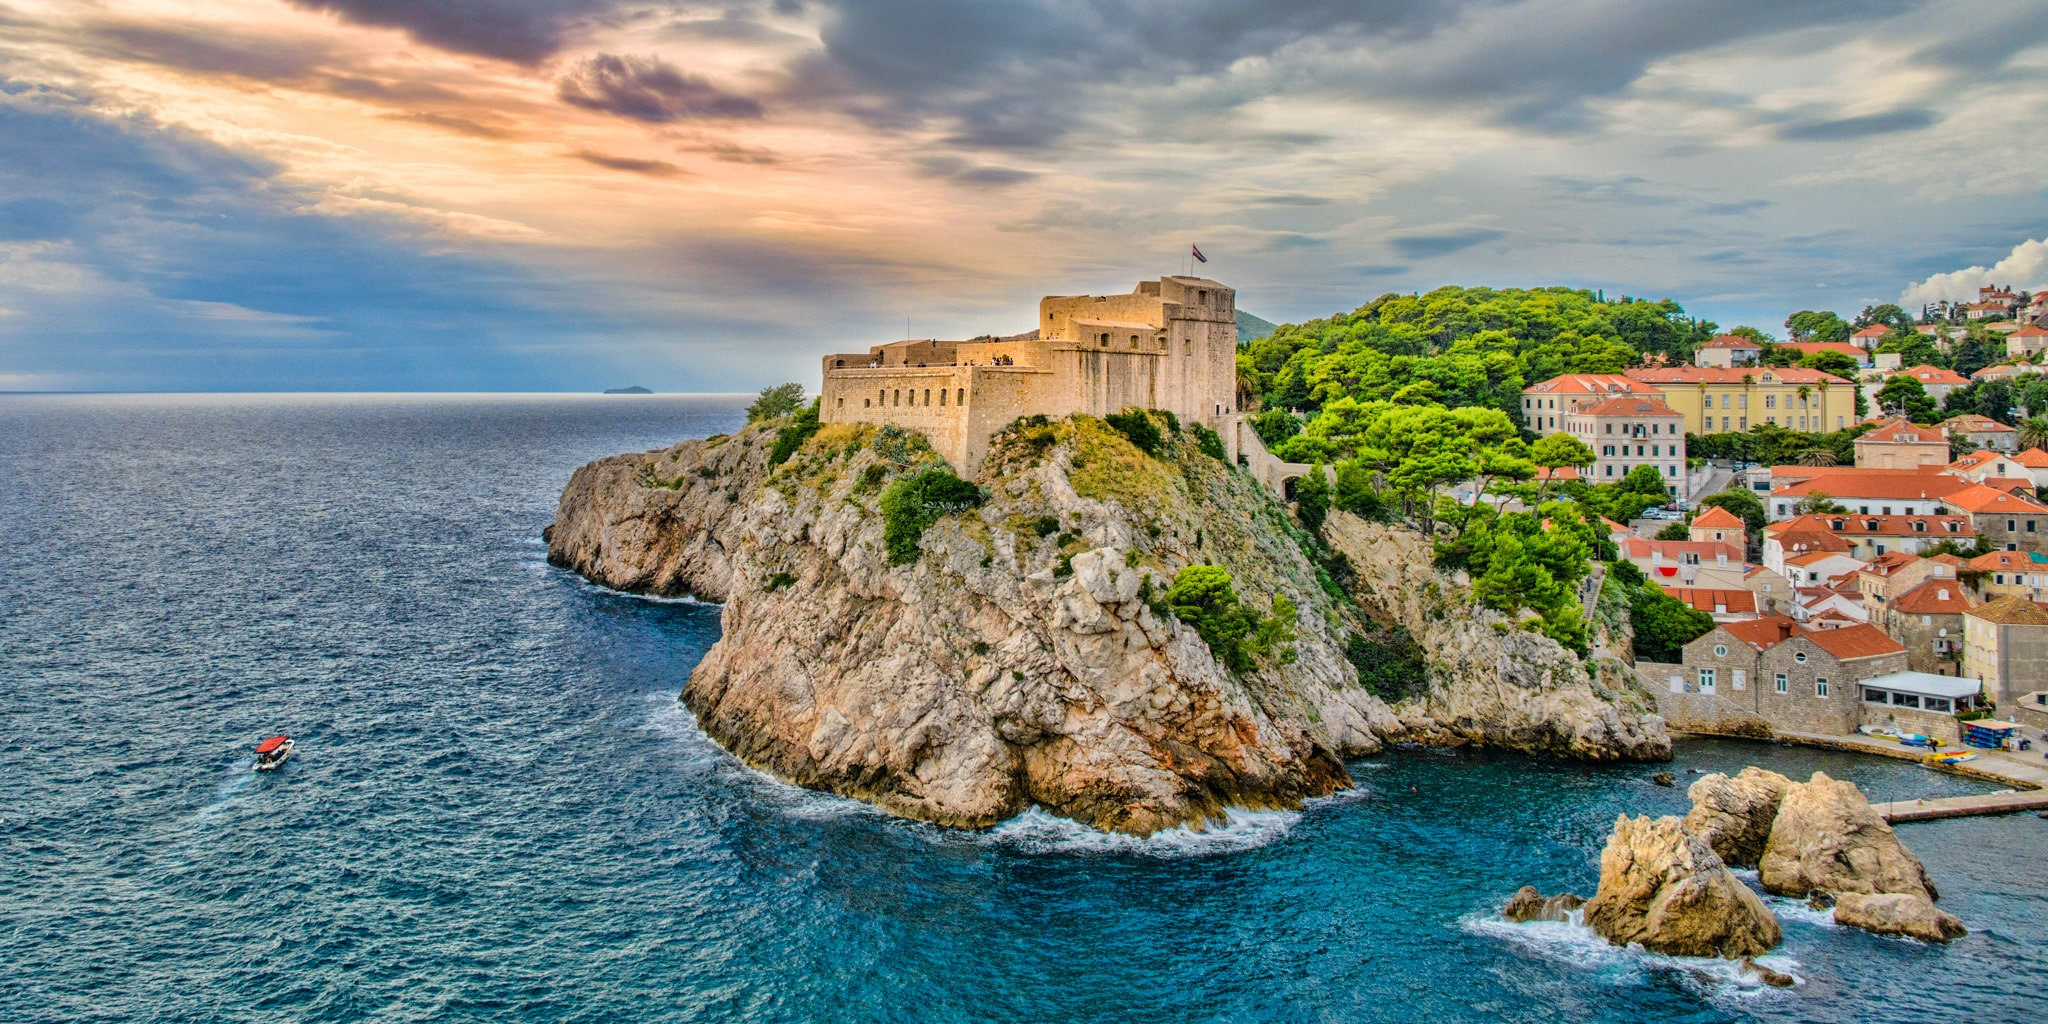 Lovrijenac Fortress in Dubrovnik as seen from the city walls near Tower Bokar in the Old City of Dubovnik in Croatia.